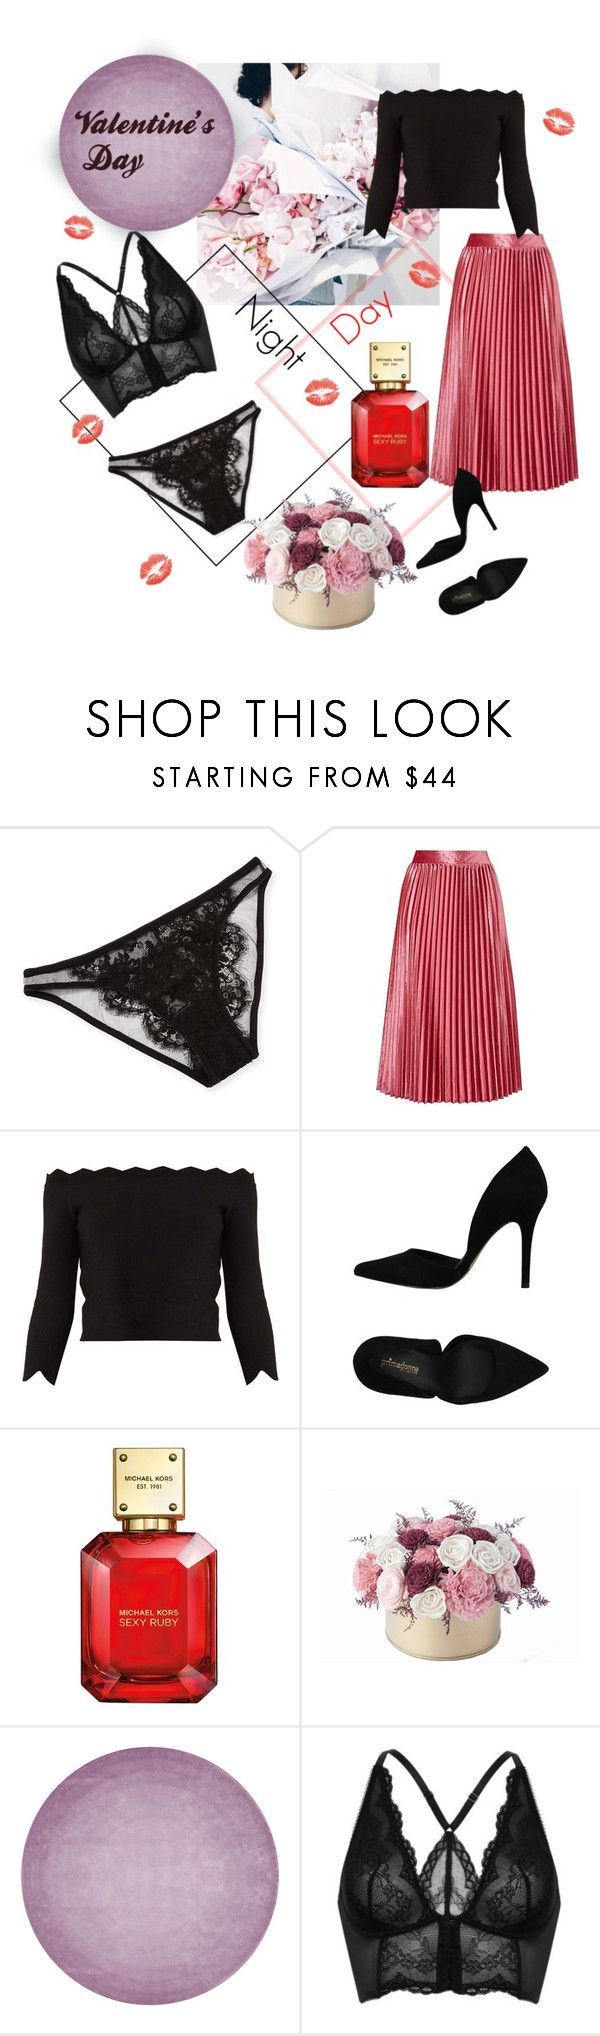 """Valentine's Day 💞💞💞"" by anastasyp ❤ liked on Polyvore featuring Prada, I.D. SARRIERI, Alexander McQueen, PrimaDonna, Michael Kors, By Second Studio, Gossard, love, day and valentine"